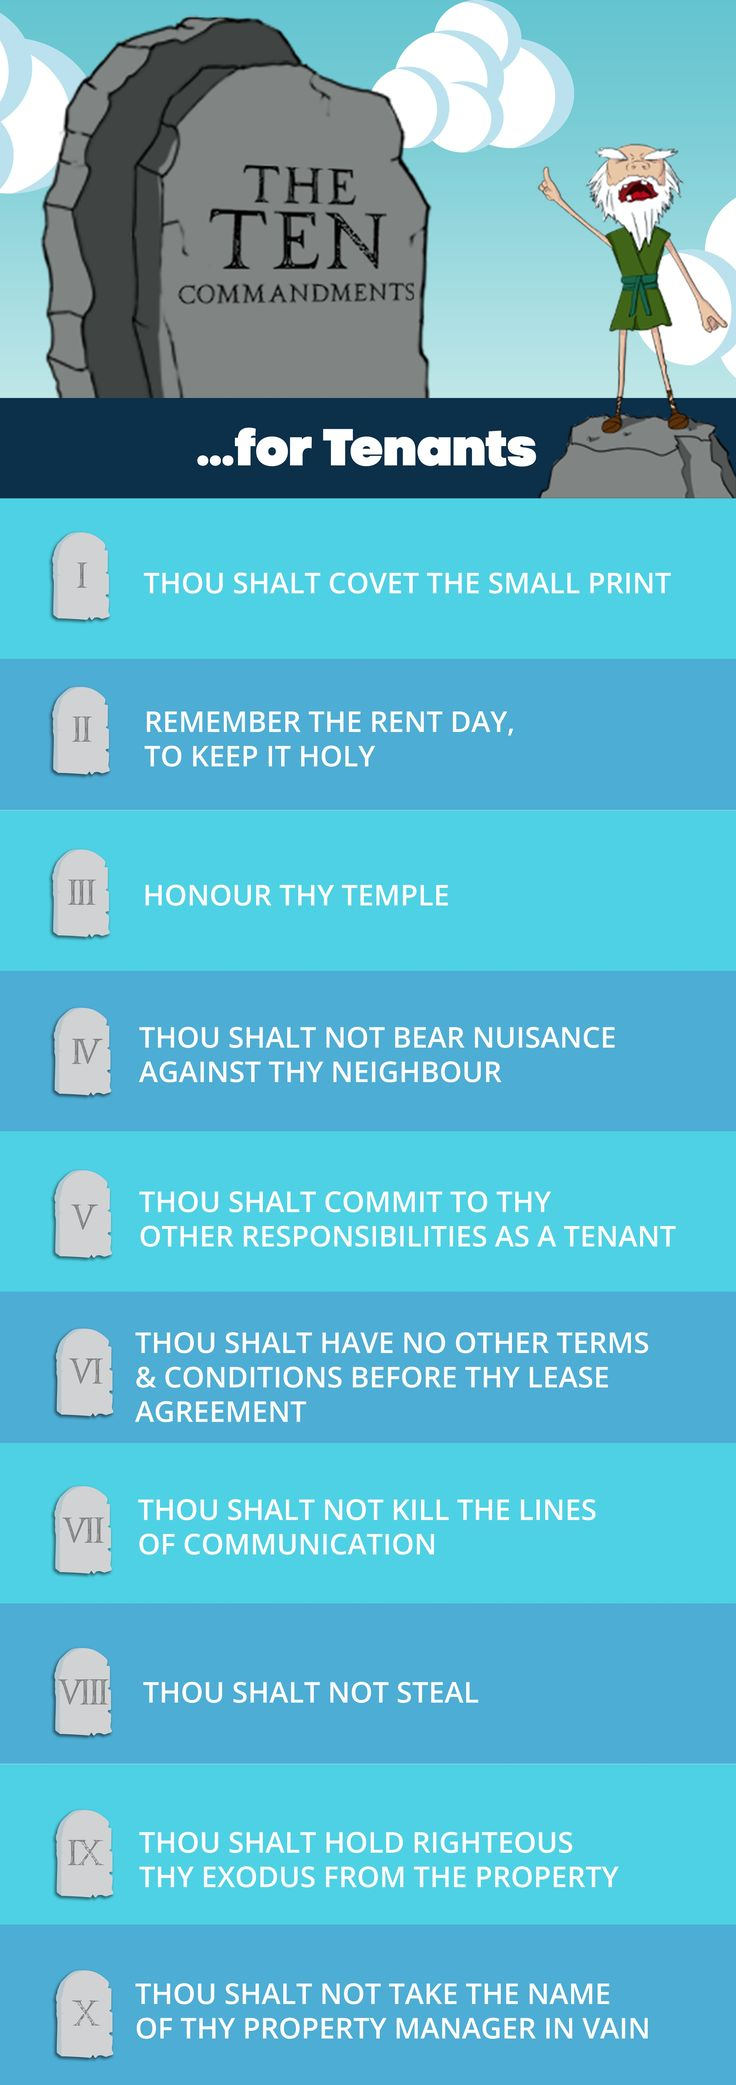 The Ten Commandments for Tenants  Read our Ten Commandments for Tenants to help forge a divine relationship with your property manager! And Perfect Homes spoke all these words, saying.  https://perfecthomes.co.th/ten-commandments-tenants/